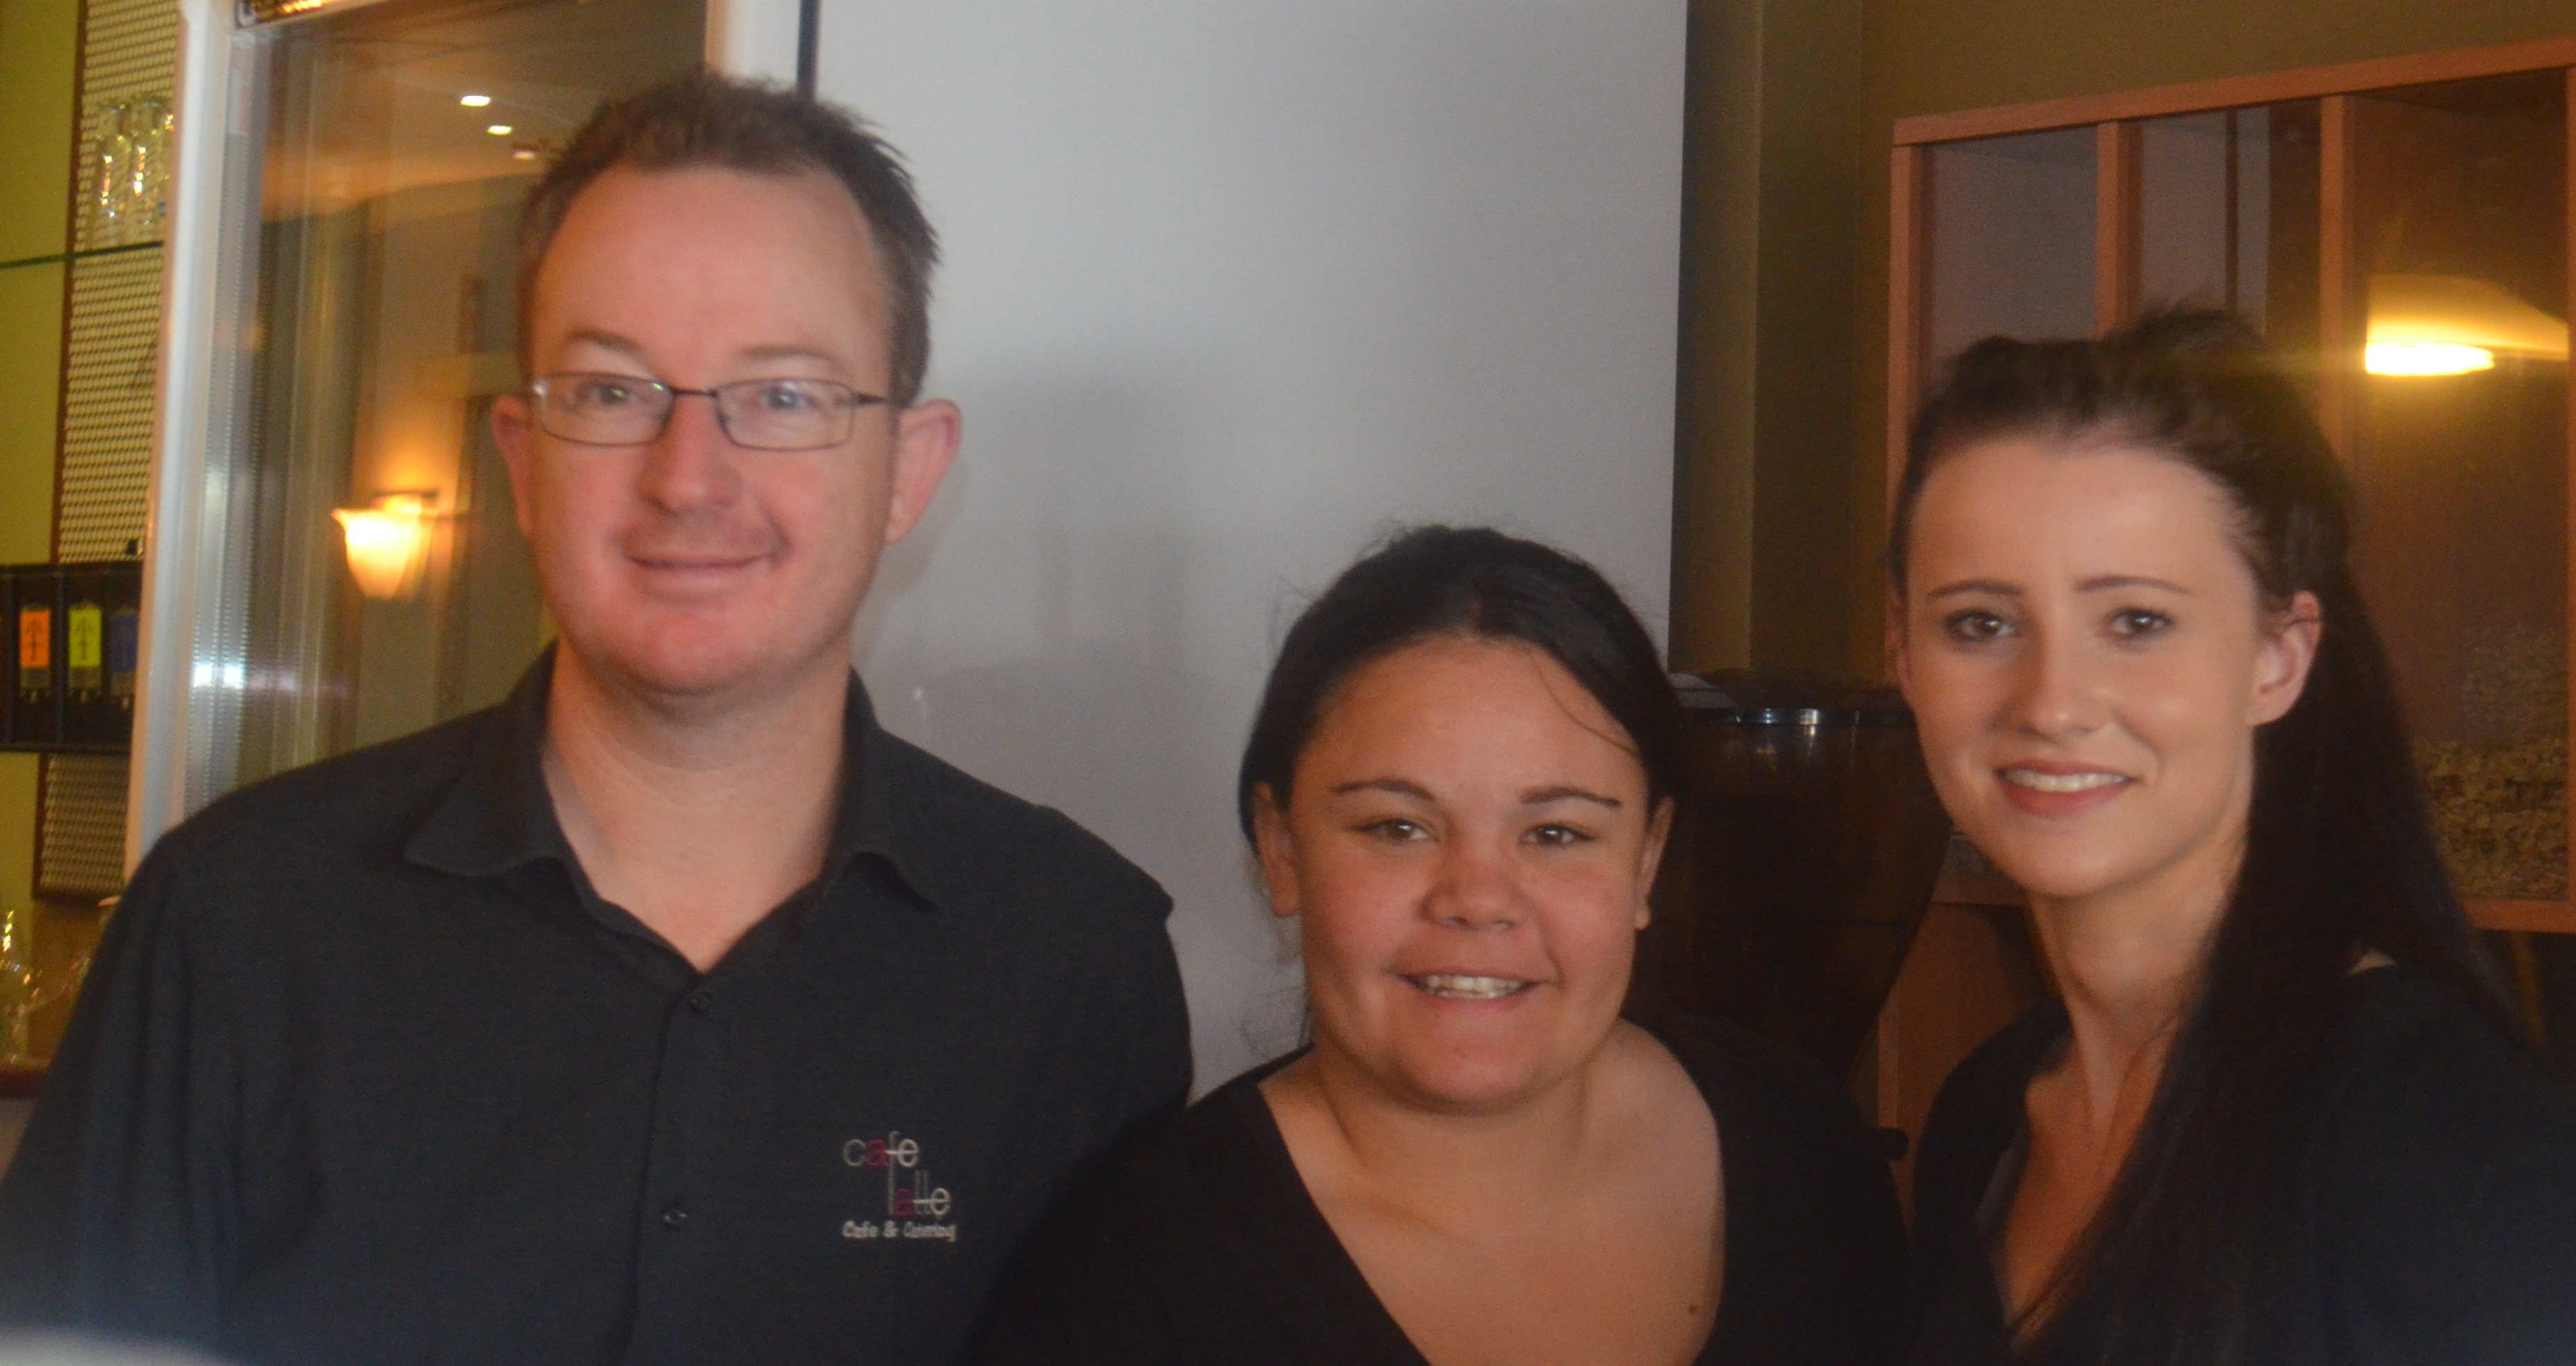 Aaron Wright Owner of Cafe Latte with two of his staff Sharni and Jacqueline